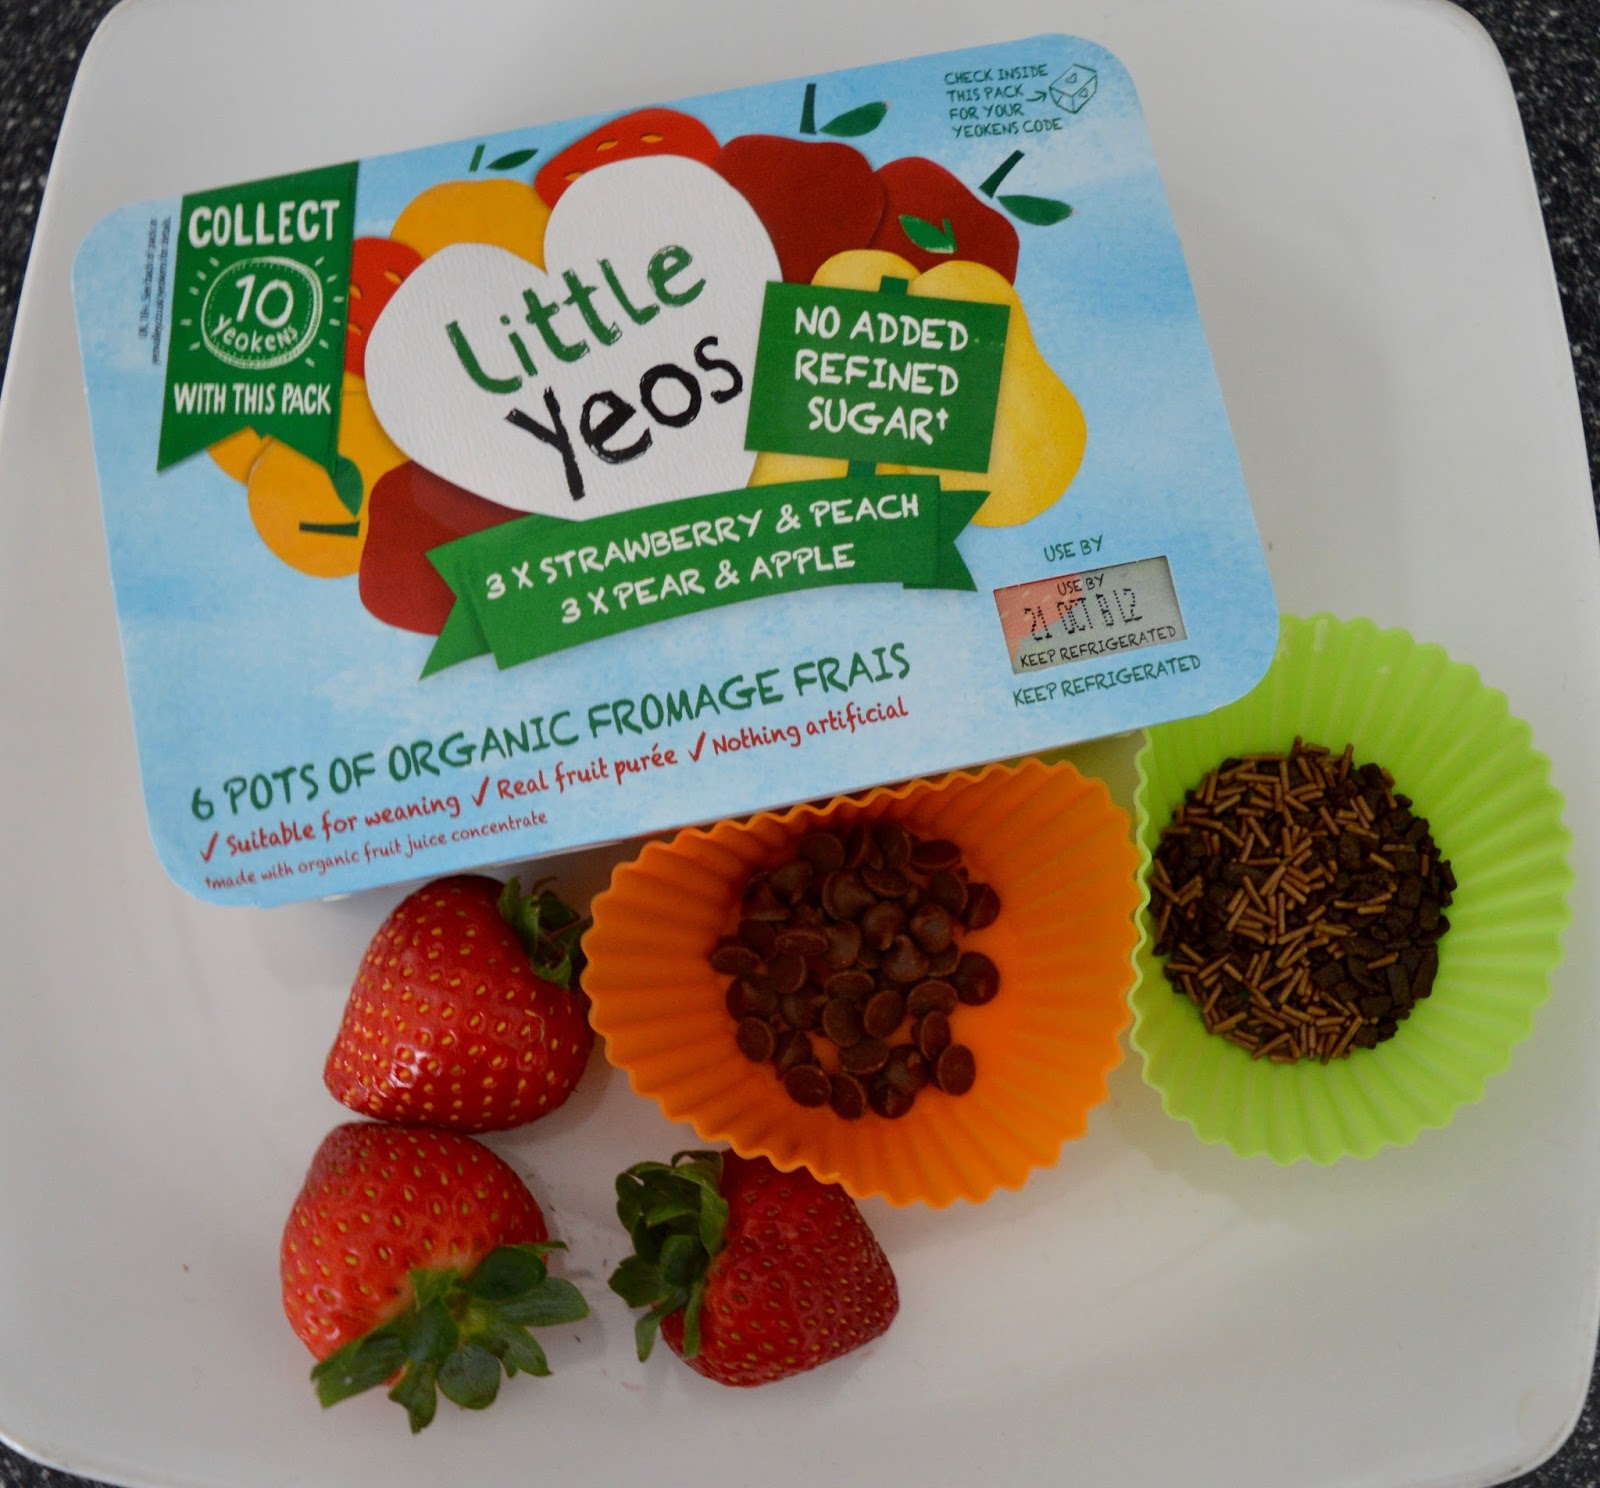 Little Yeos Yoghurt Bark Recipe - ingredients